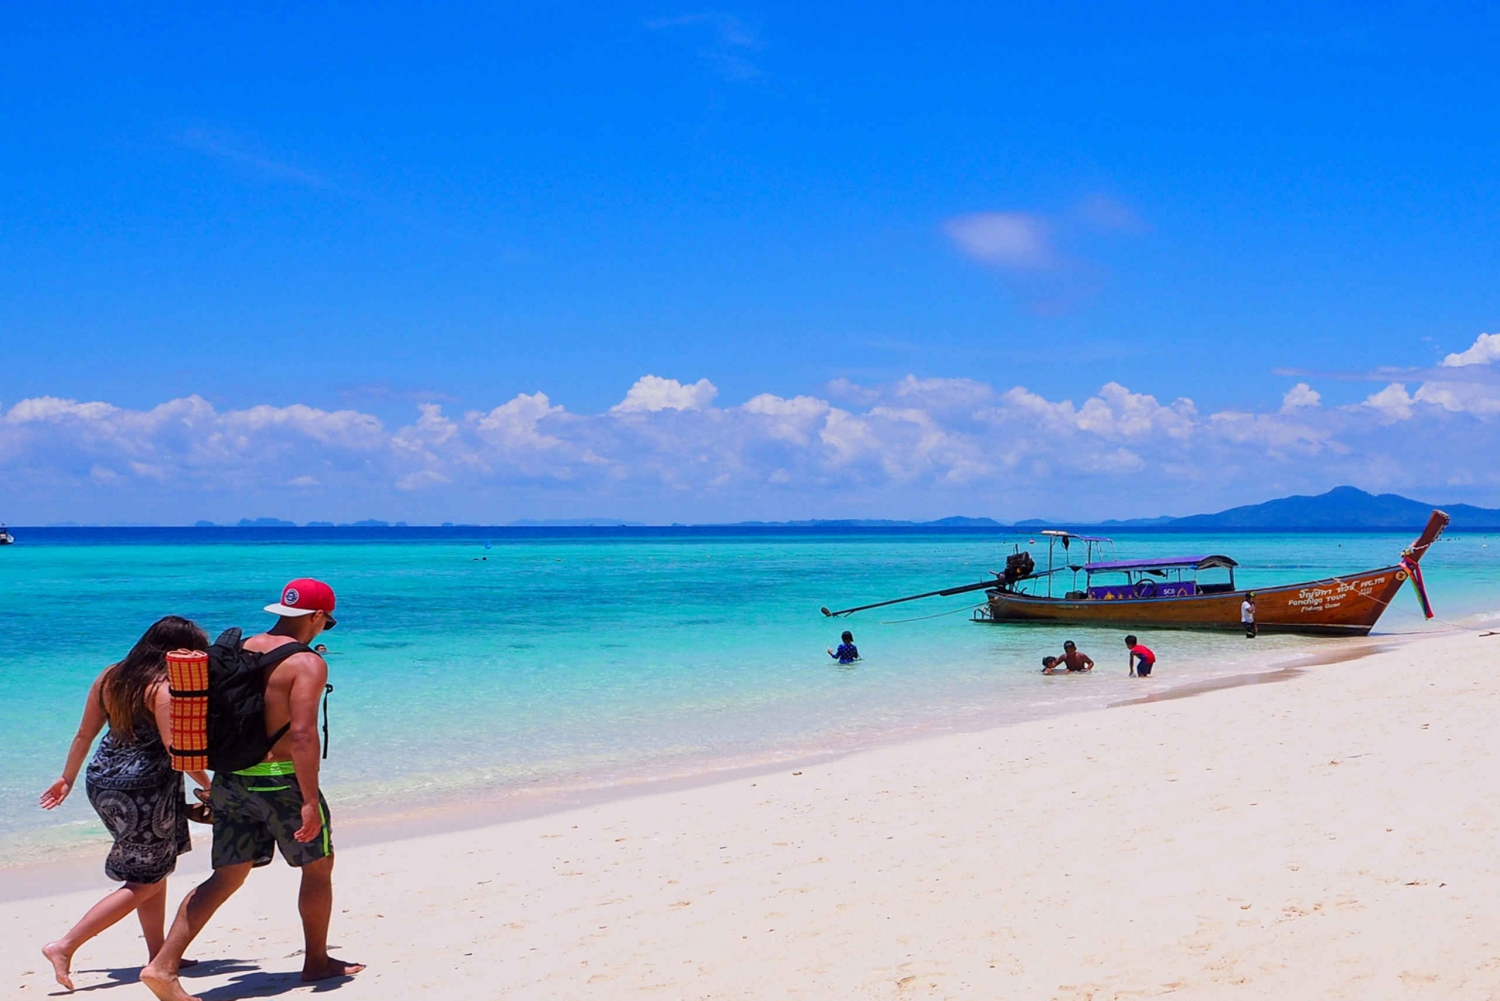 Early Riser >> Early Riser Phi Phi Island Trip By Speedboat